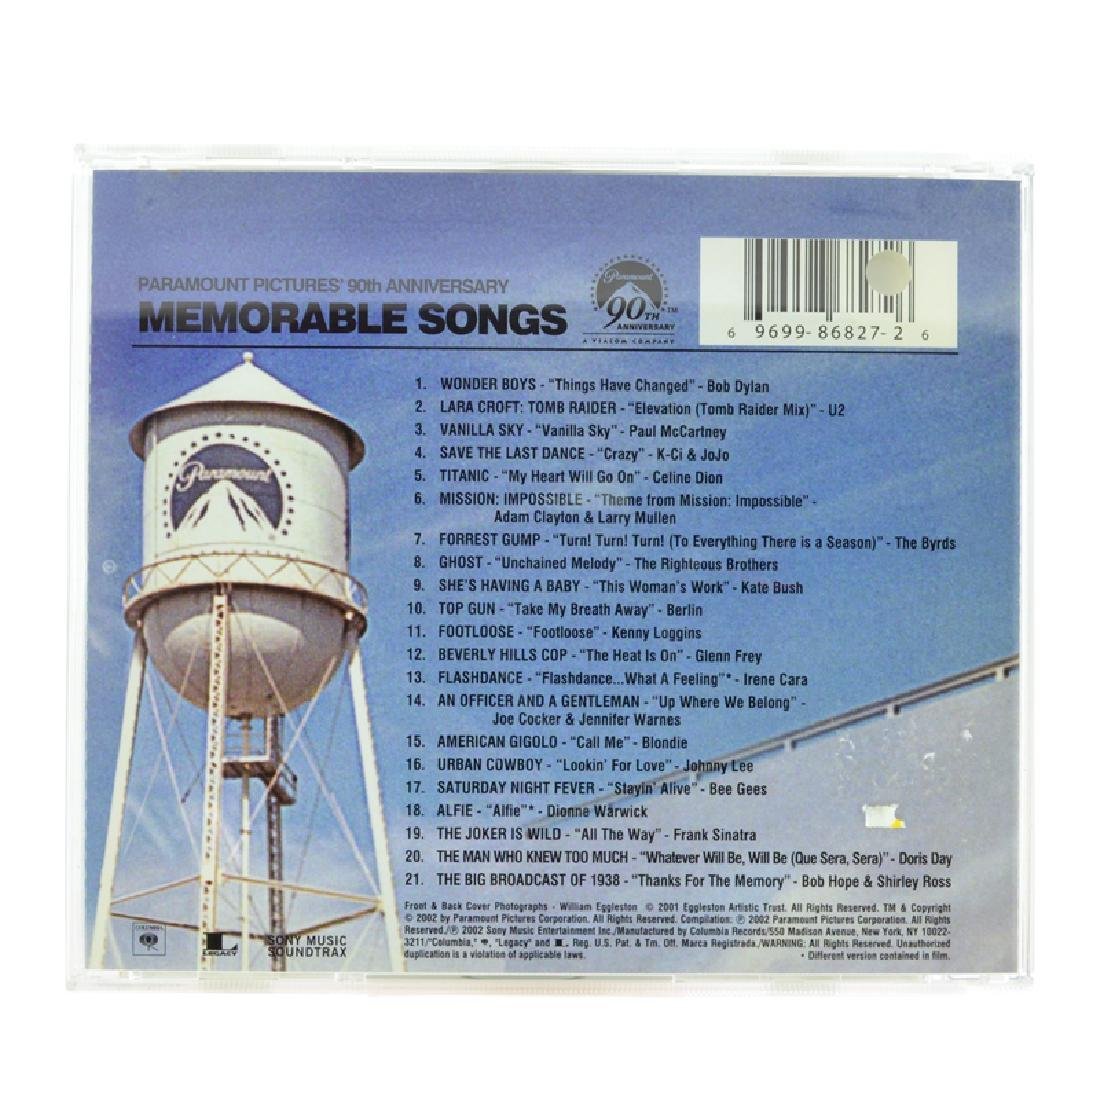 Paramount Pictures 90th Anniversary Memorable Songs CDs - 2